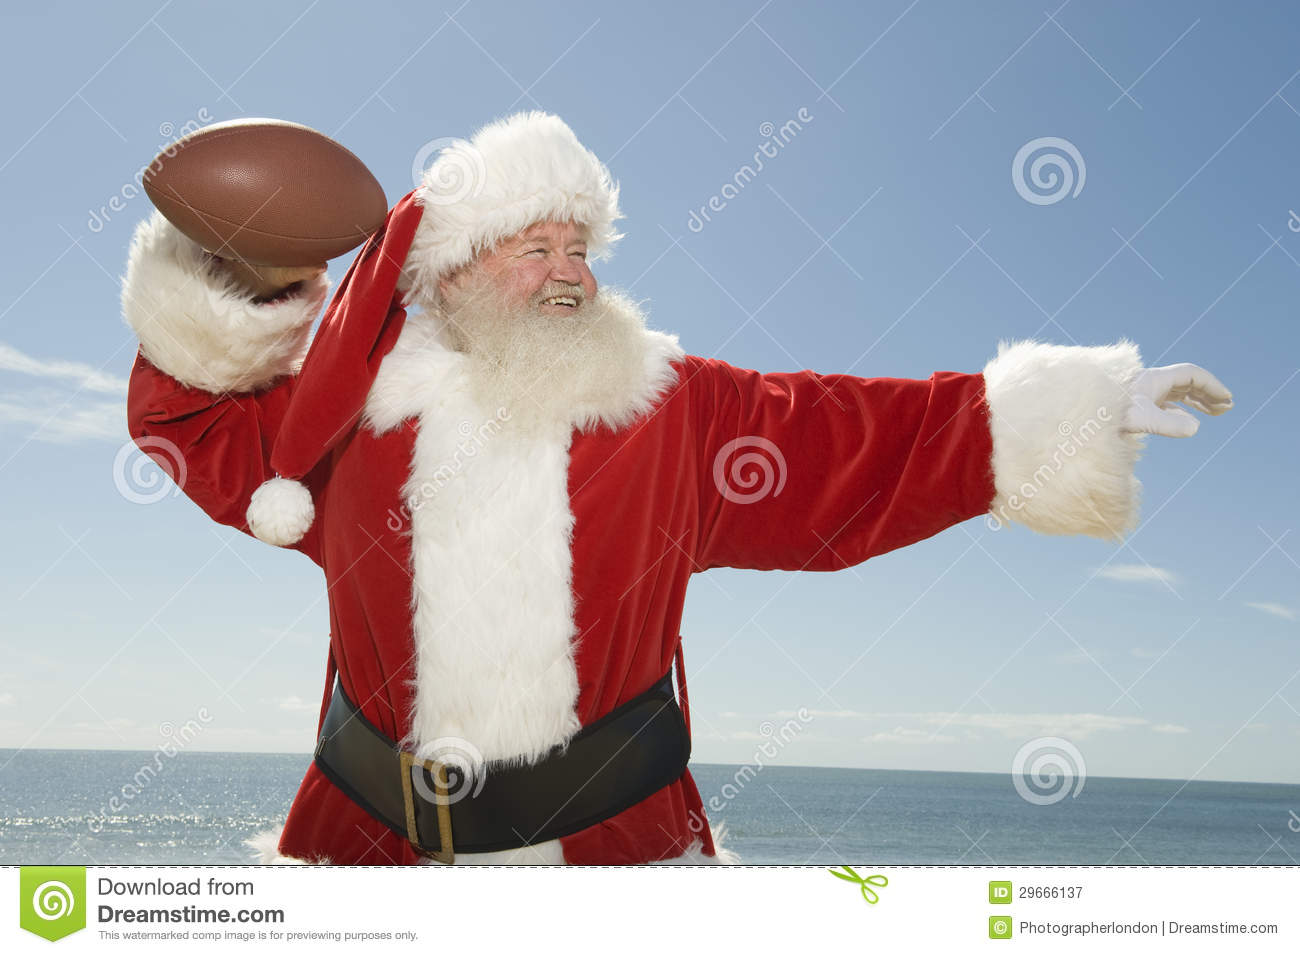 Santa claus ready to throw rugby ball royalty free stock